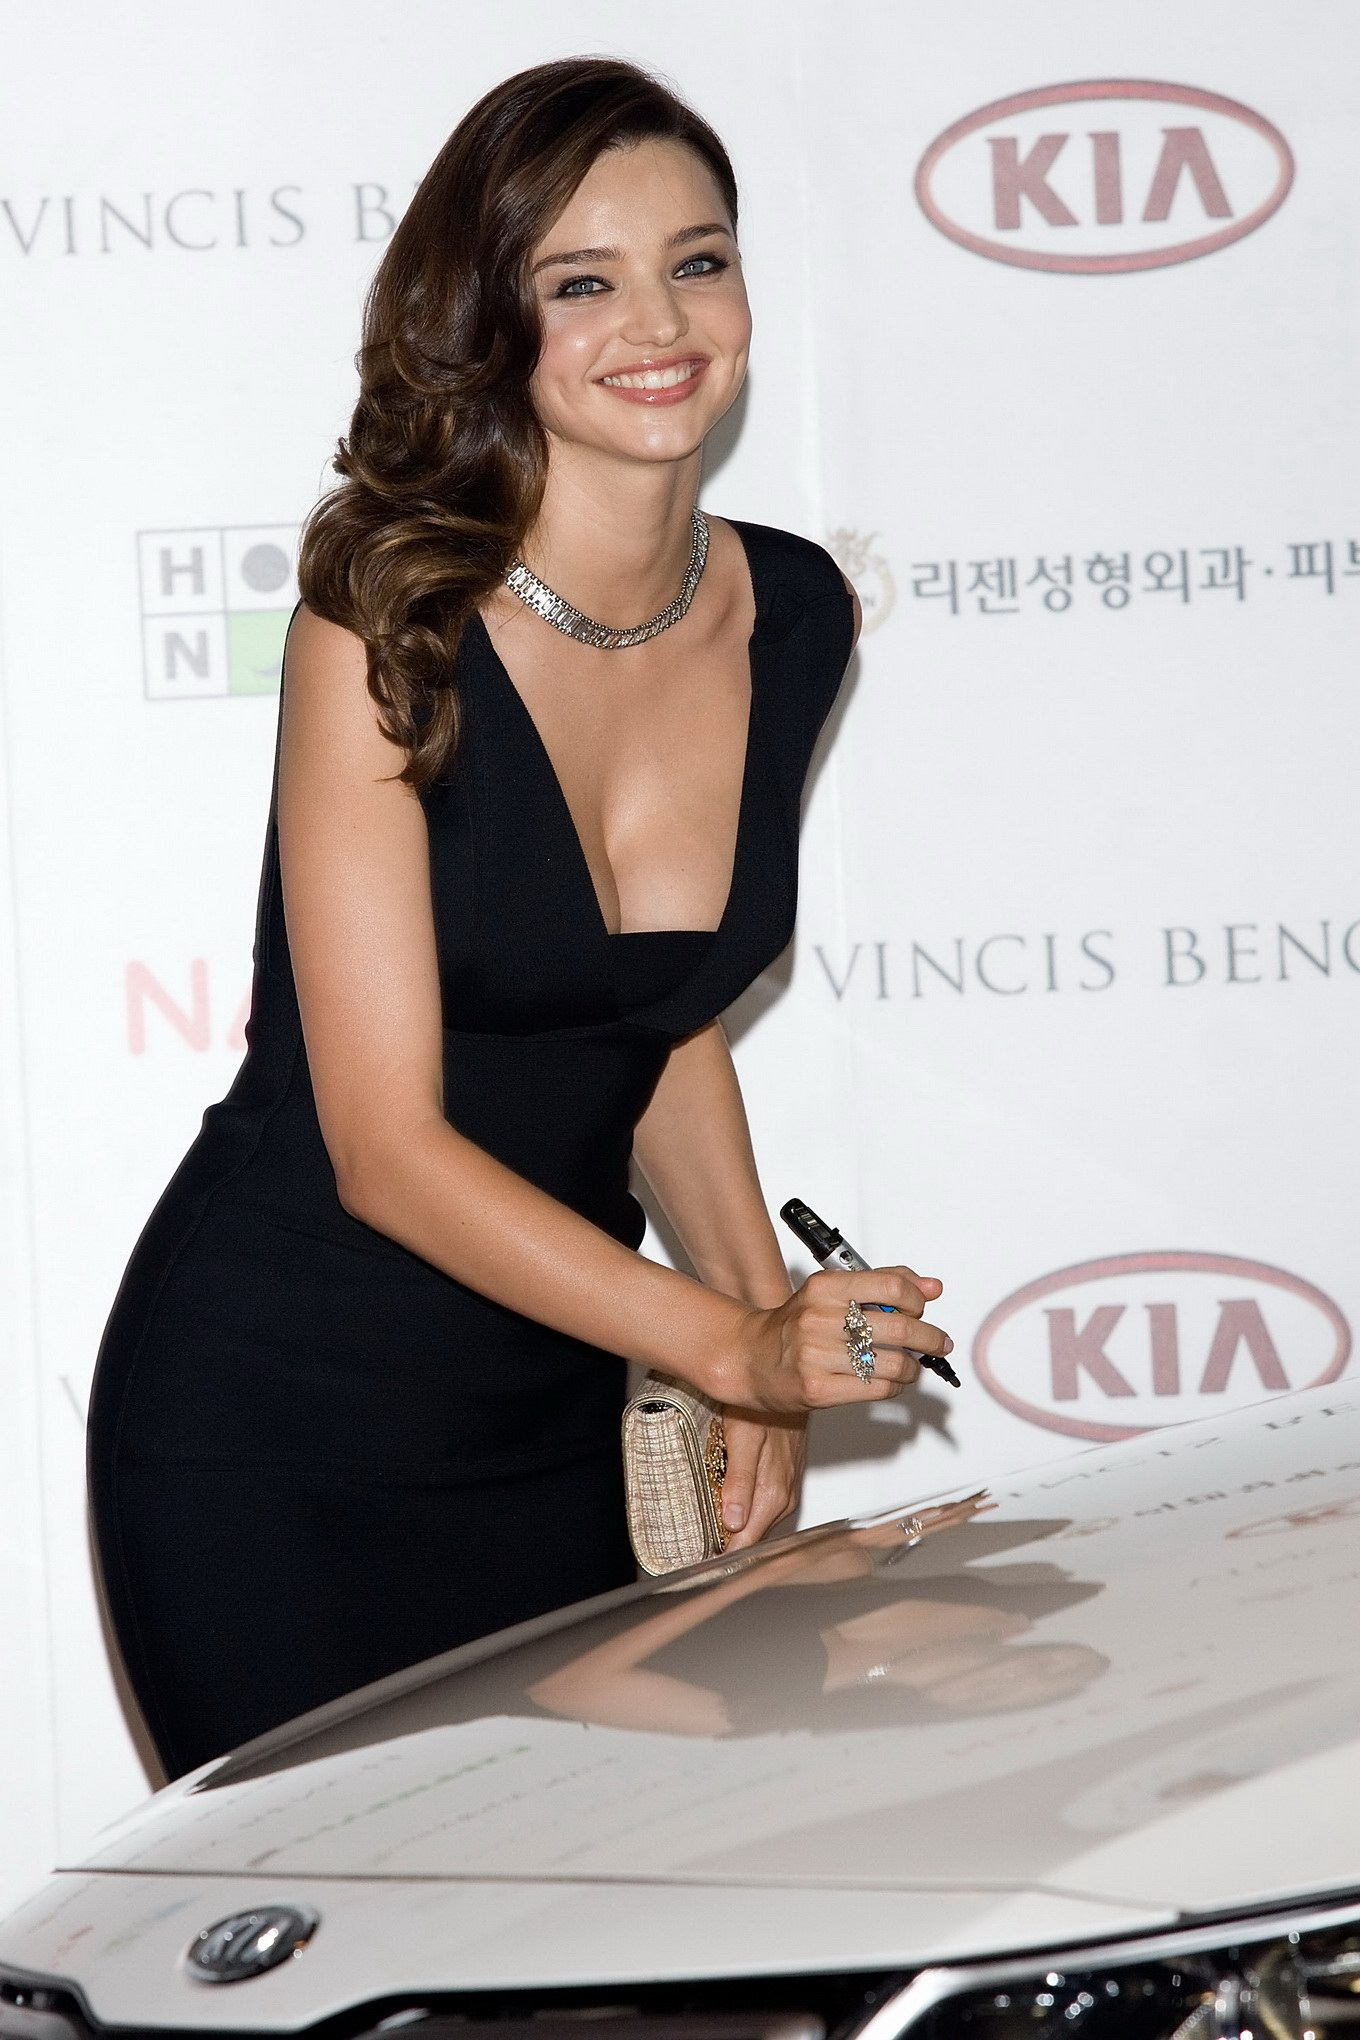 Miranda Kerr Downblouse While Promoting Kia In Seoul From Celebmatri